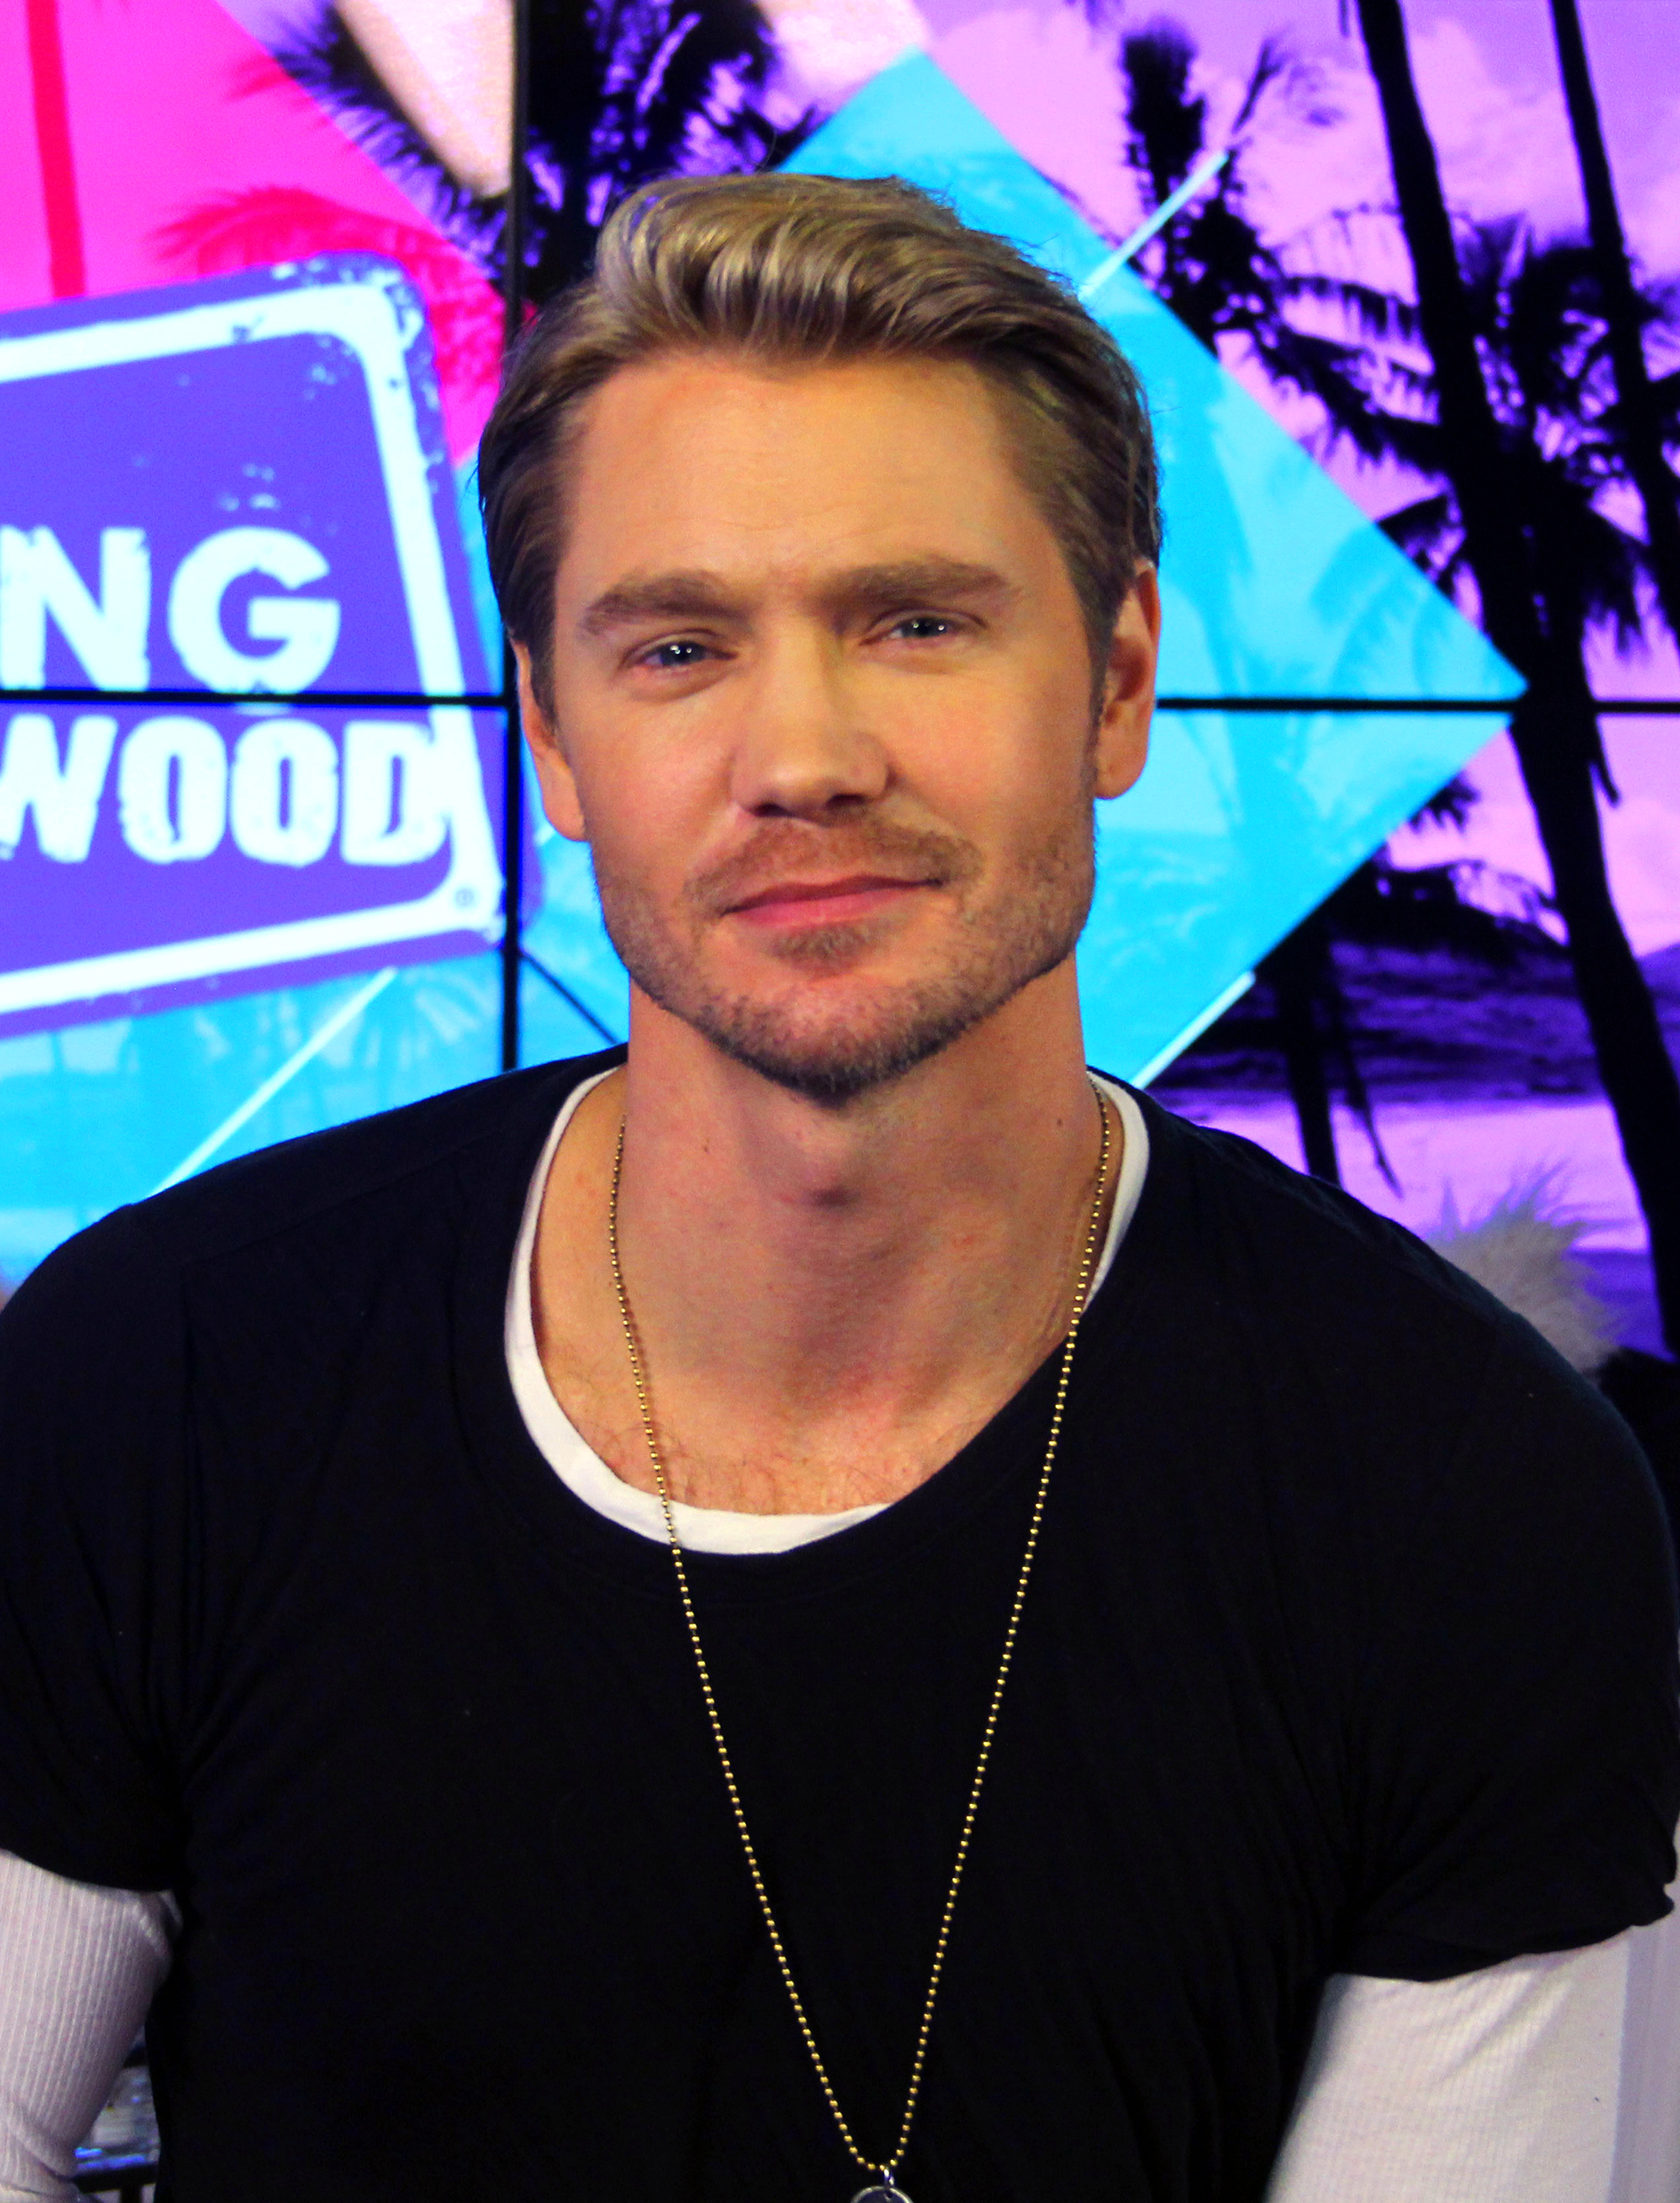 The Stars Joining Fall TV - Following his leading role on CMT's Sun Records , One Tree Hill alum Chad Michael Murray landed a recurring role in season 3 of Fox's Star. He'll take on the role of Xander McPherson, a real estate investor who is romantically involved with Brandy 's Cassie Brown.